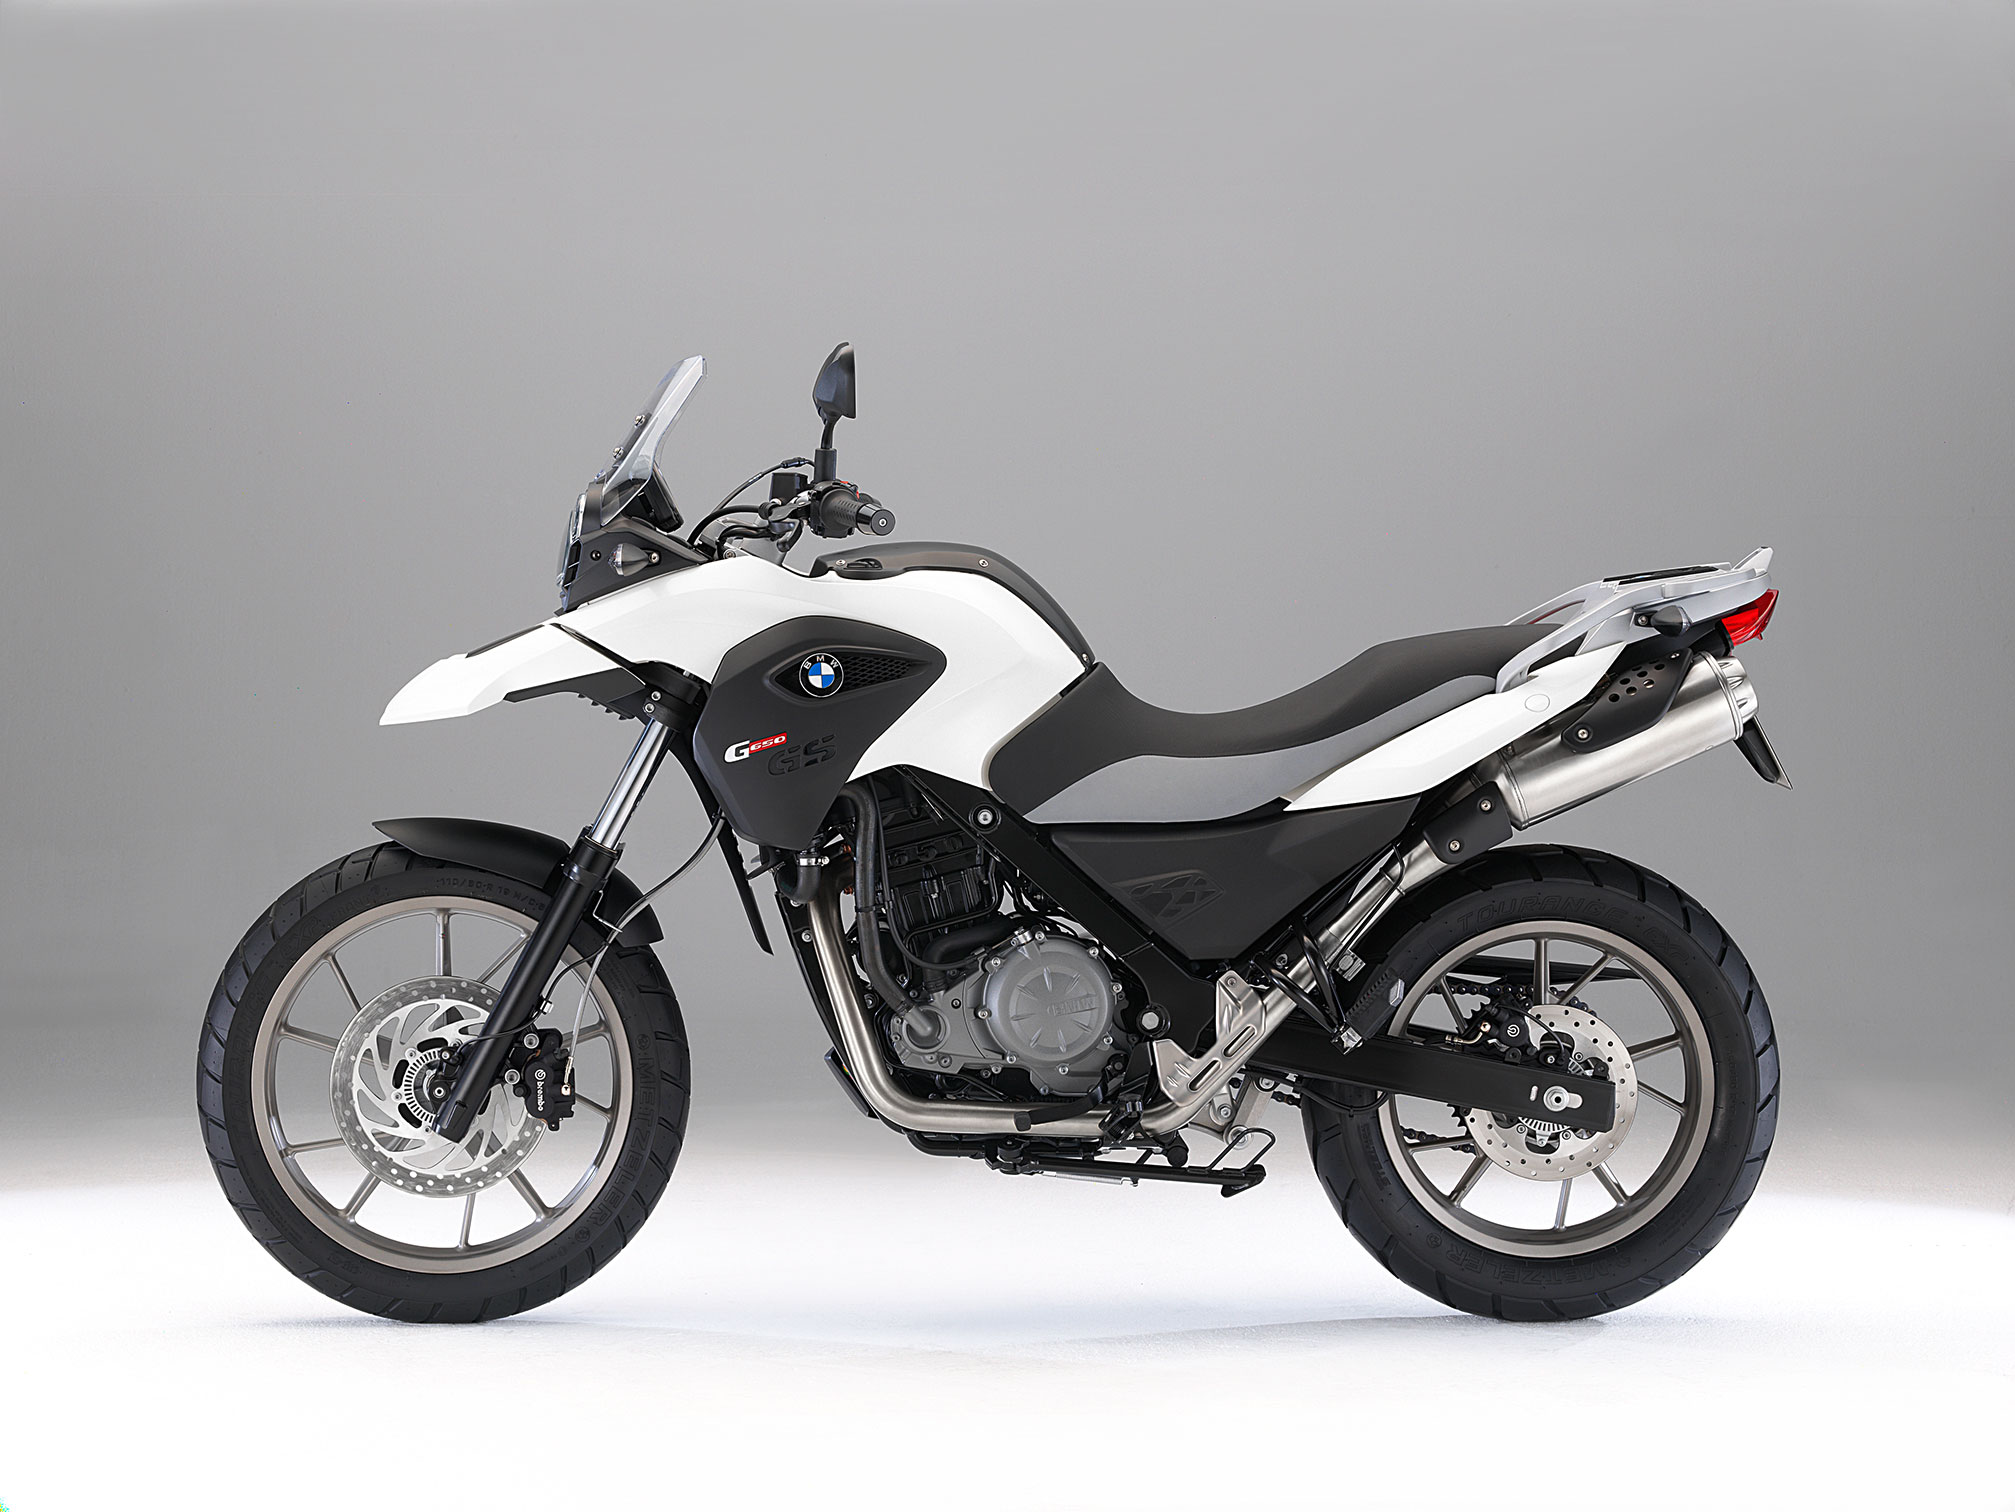 BMW G 650 GS 2015 images #78264